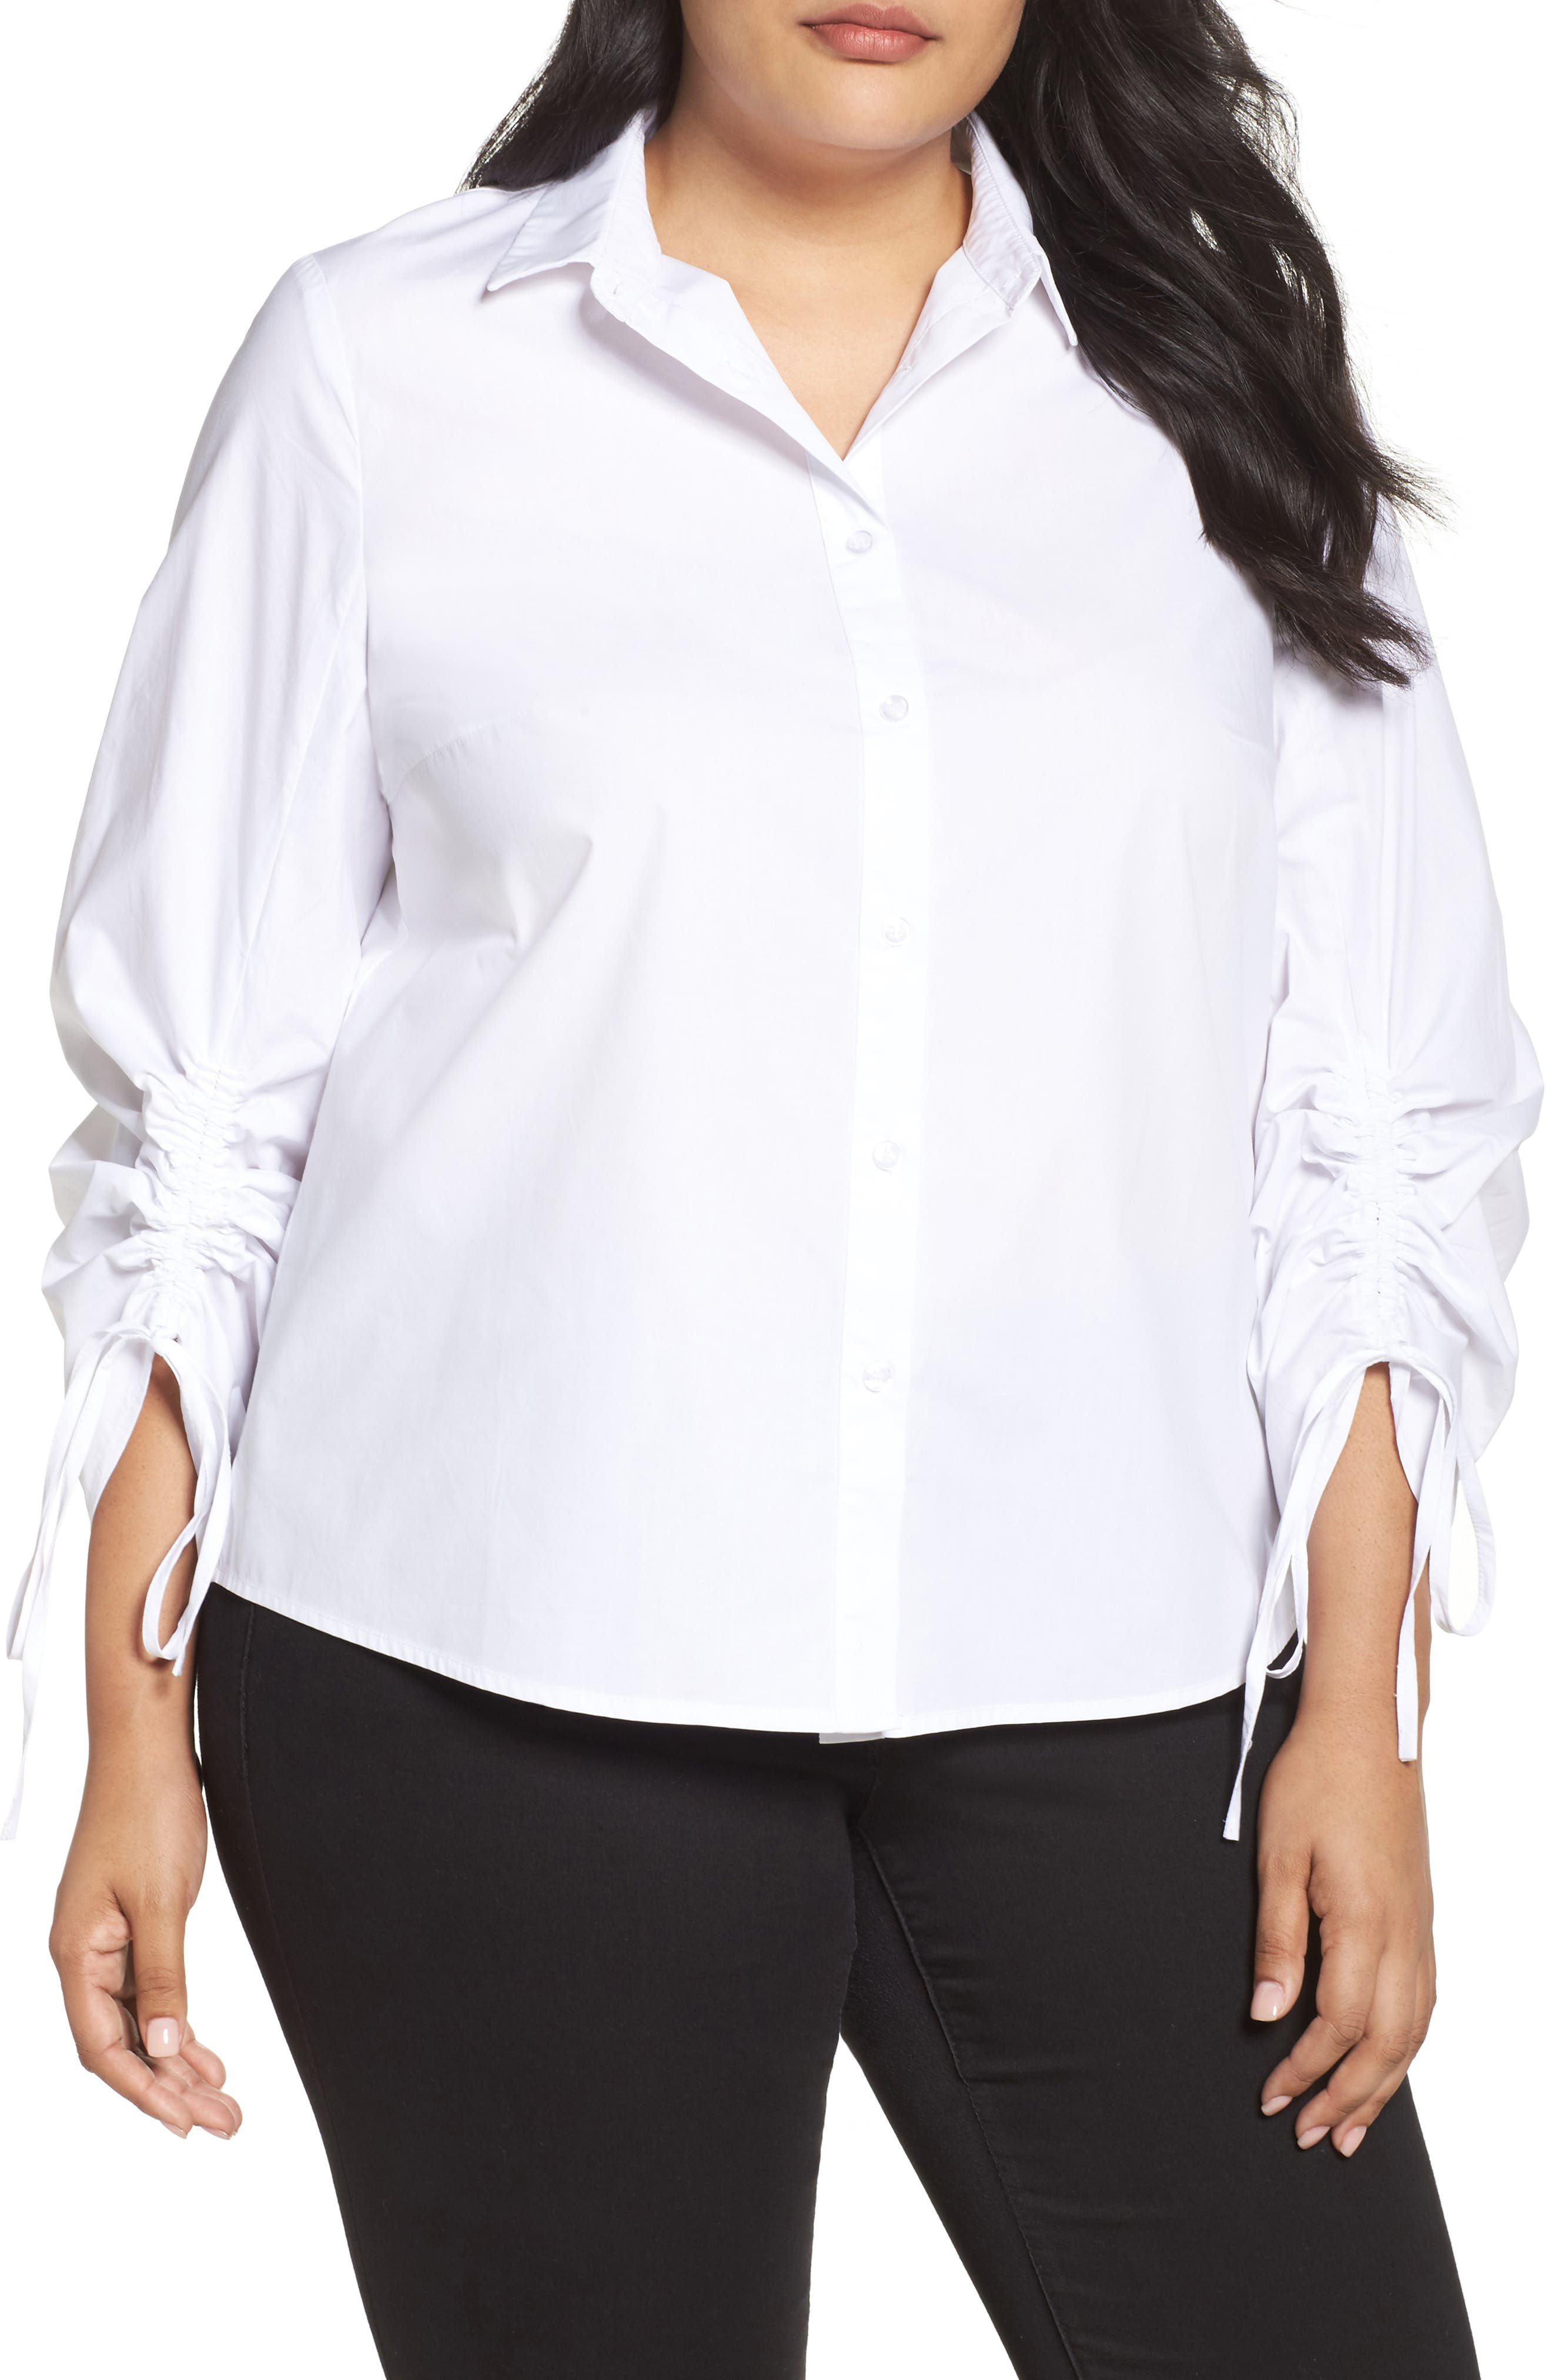 Ruched Sleeve Button-Up Shirt,                             Main thumbnail 1, color,                             White